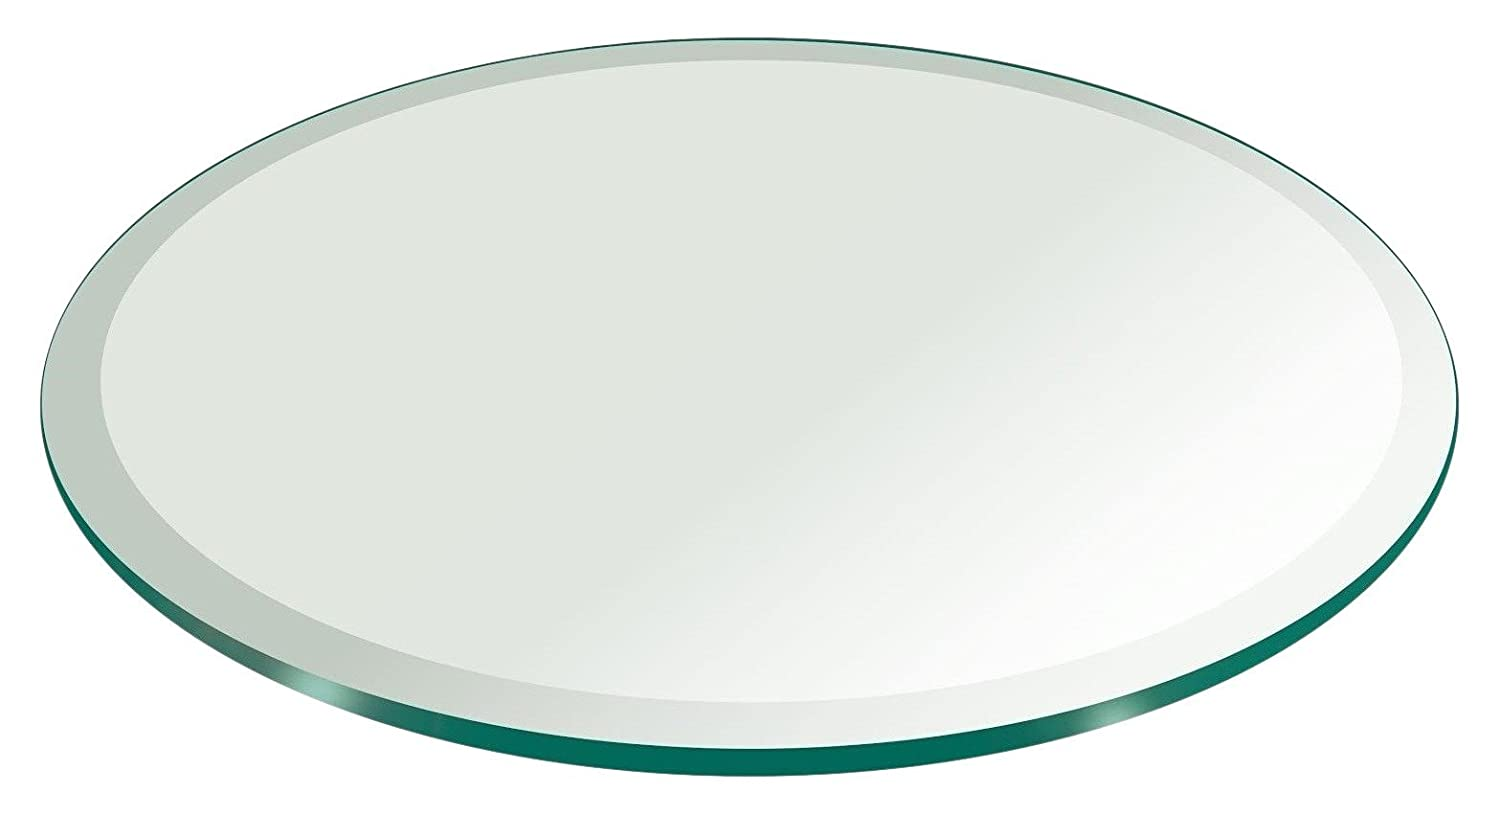 46 Inch Round Glass Table Top 1//2 Thick Tempered Beveled Edge by Fab Glass and Mirror